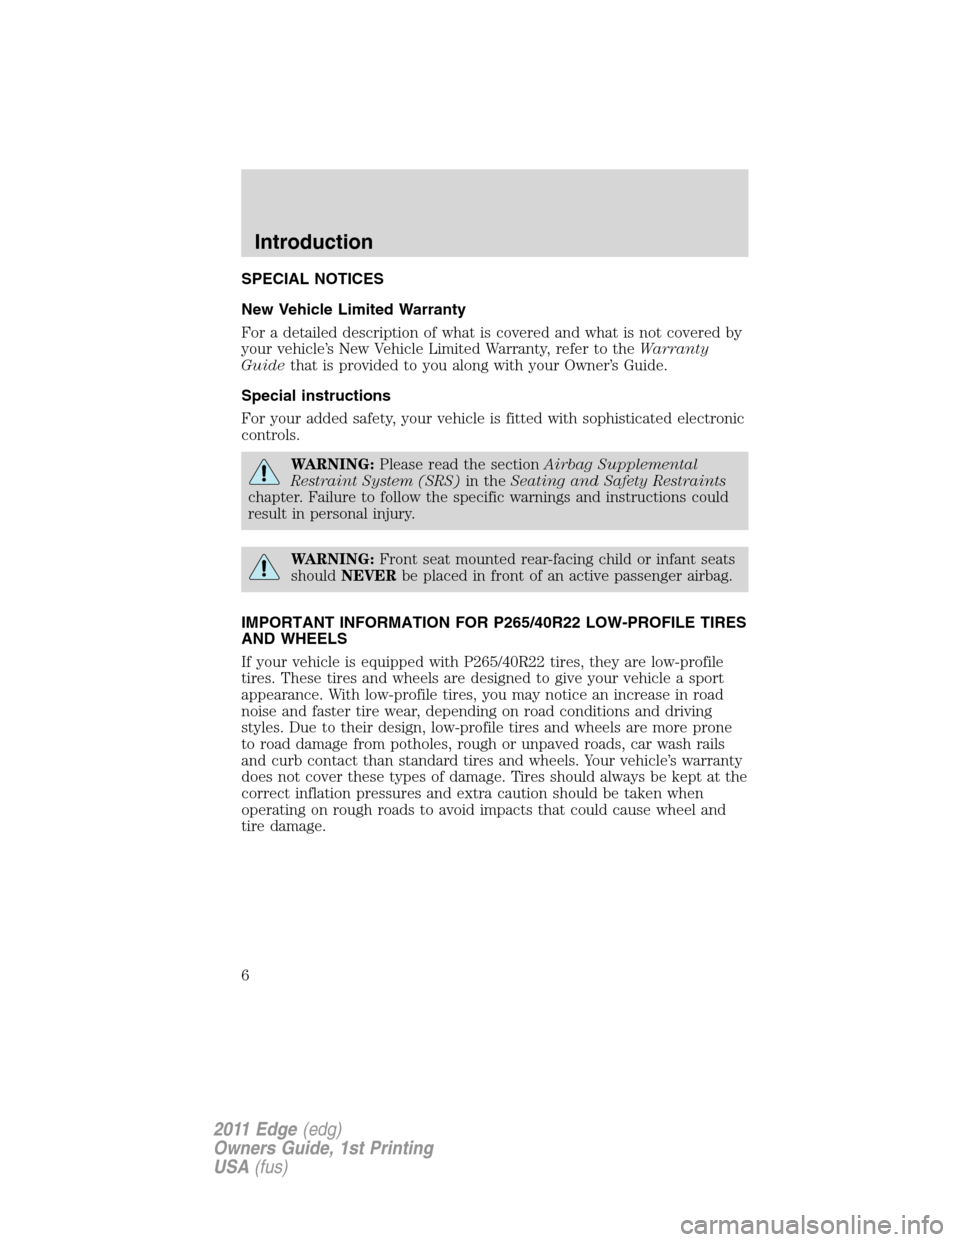 FORD EDGE 2011 1.G Owners Manual, Page 6